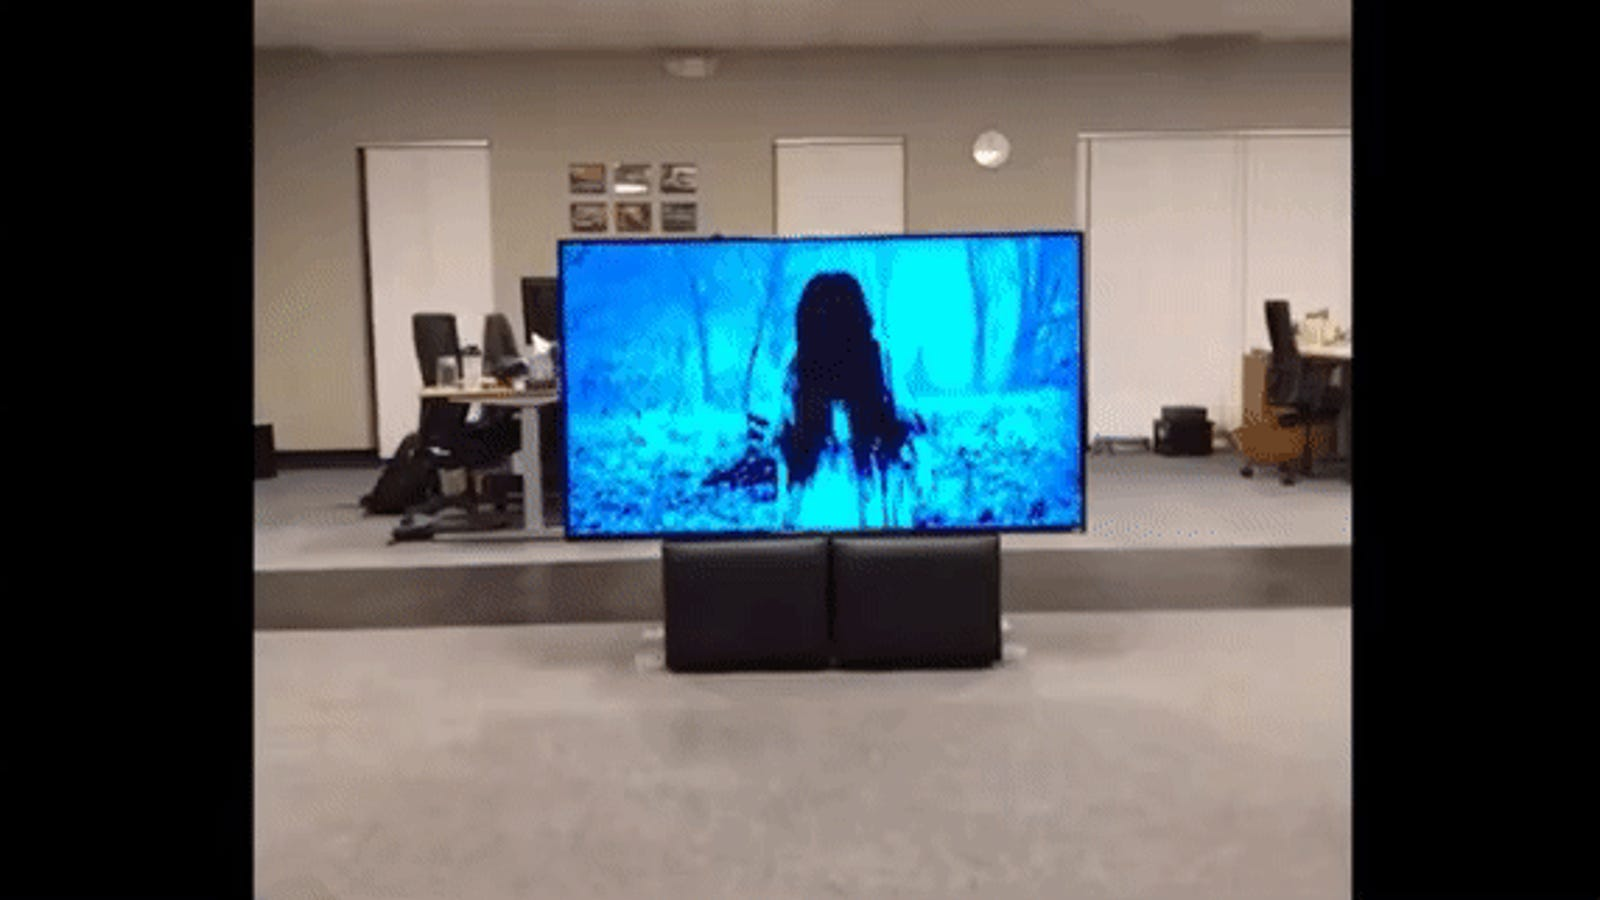 Watching That Girl From The Ring Crawl Out of a TV in AR Just Ruined My Day